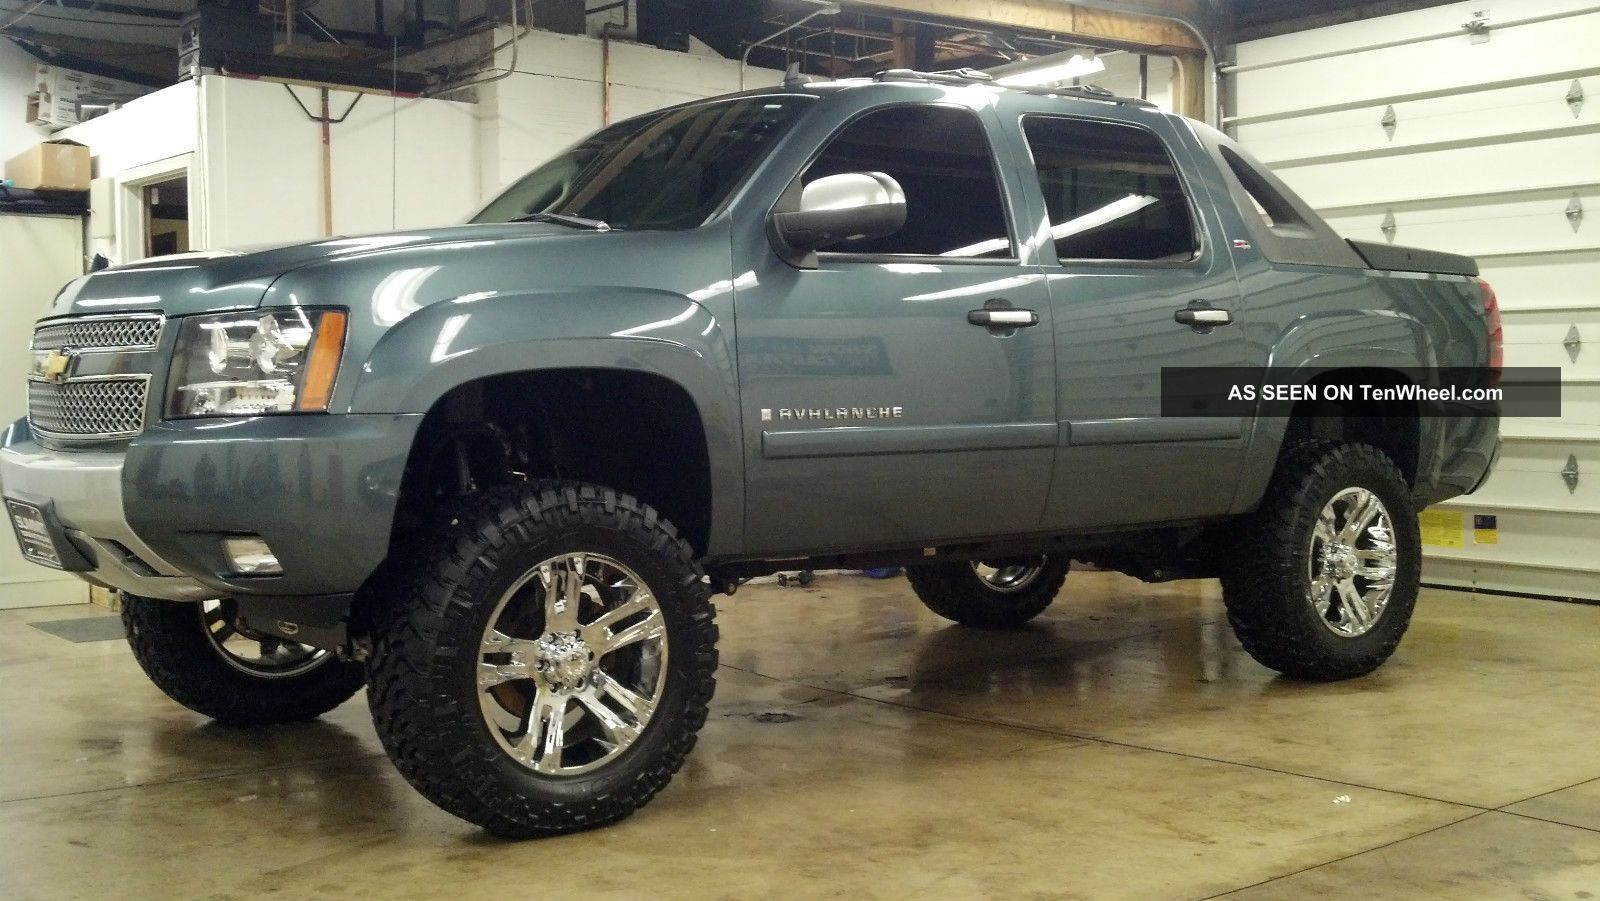 2008 Chevrolet Avalanche Lifted Custom Lt Crew Cab Pickup 4 Door 5 3l